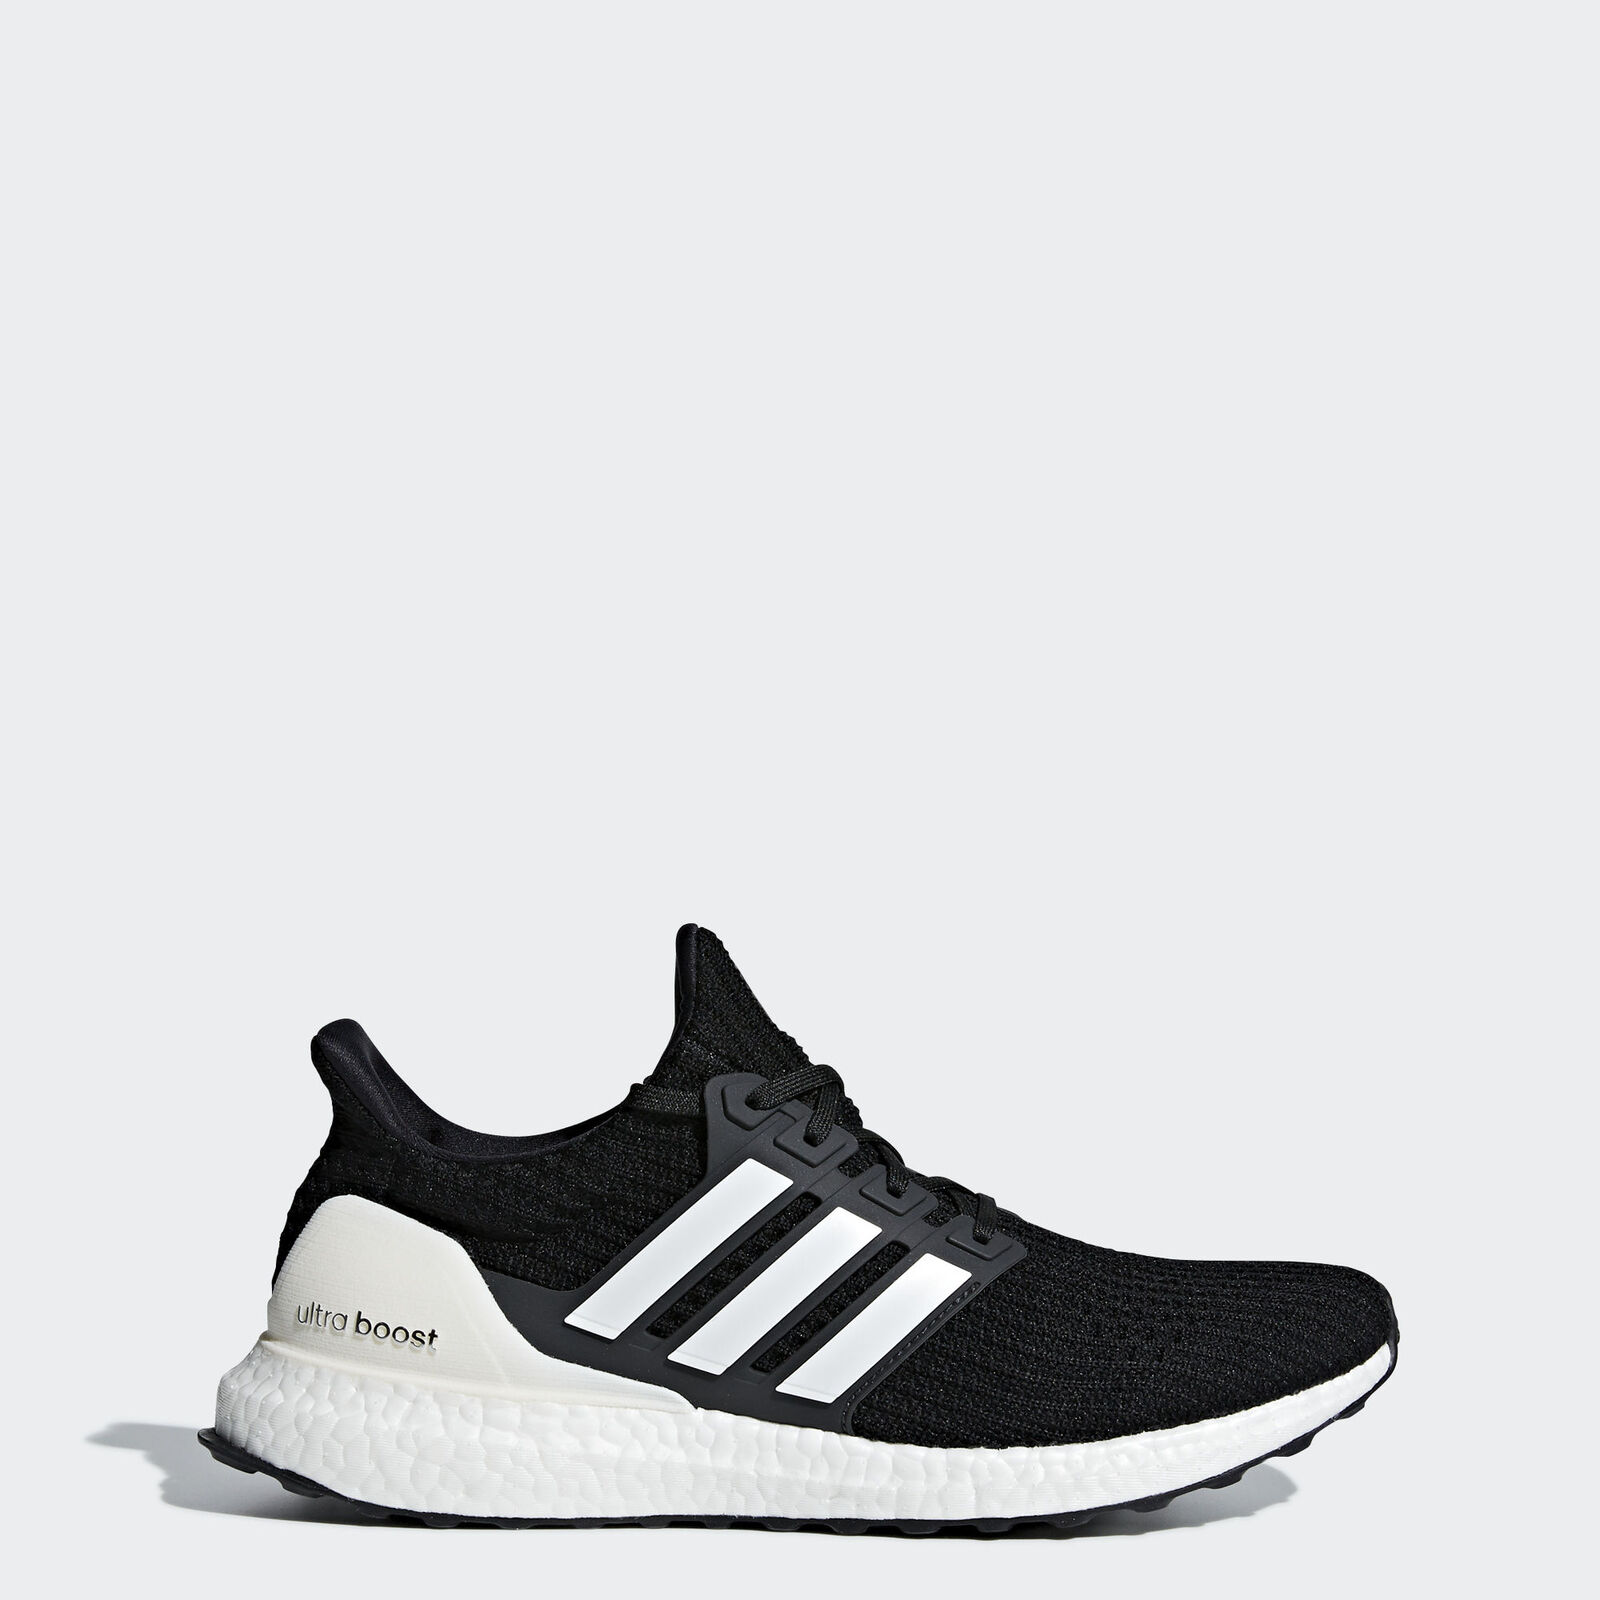 adidas Ultraboost Shoes Men's in Clothing, Shoes